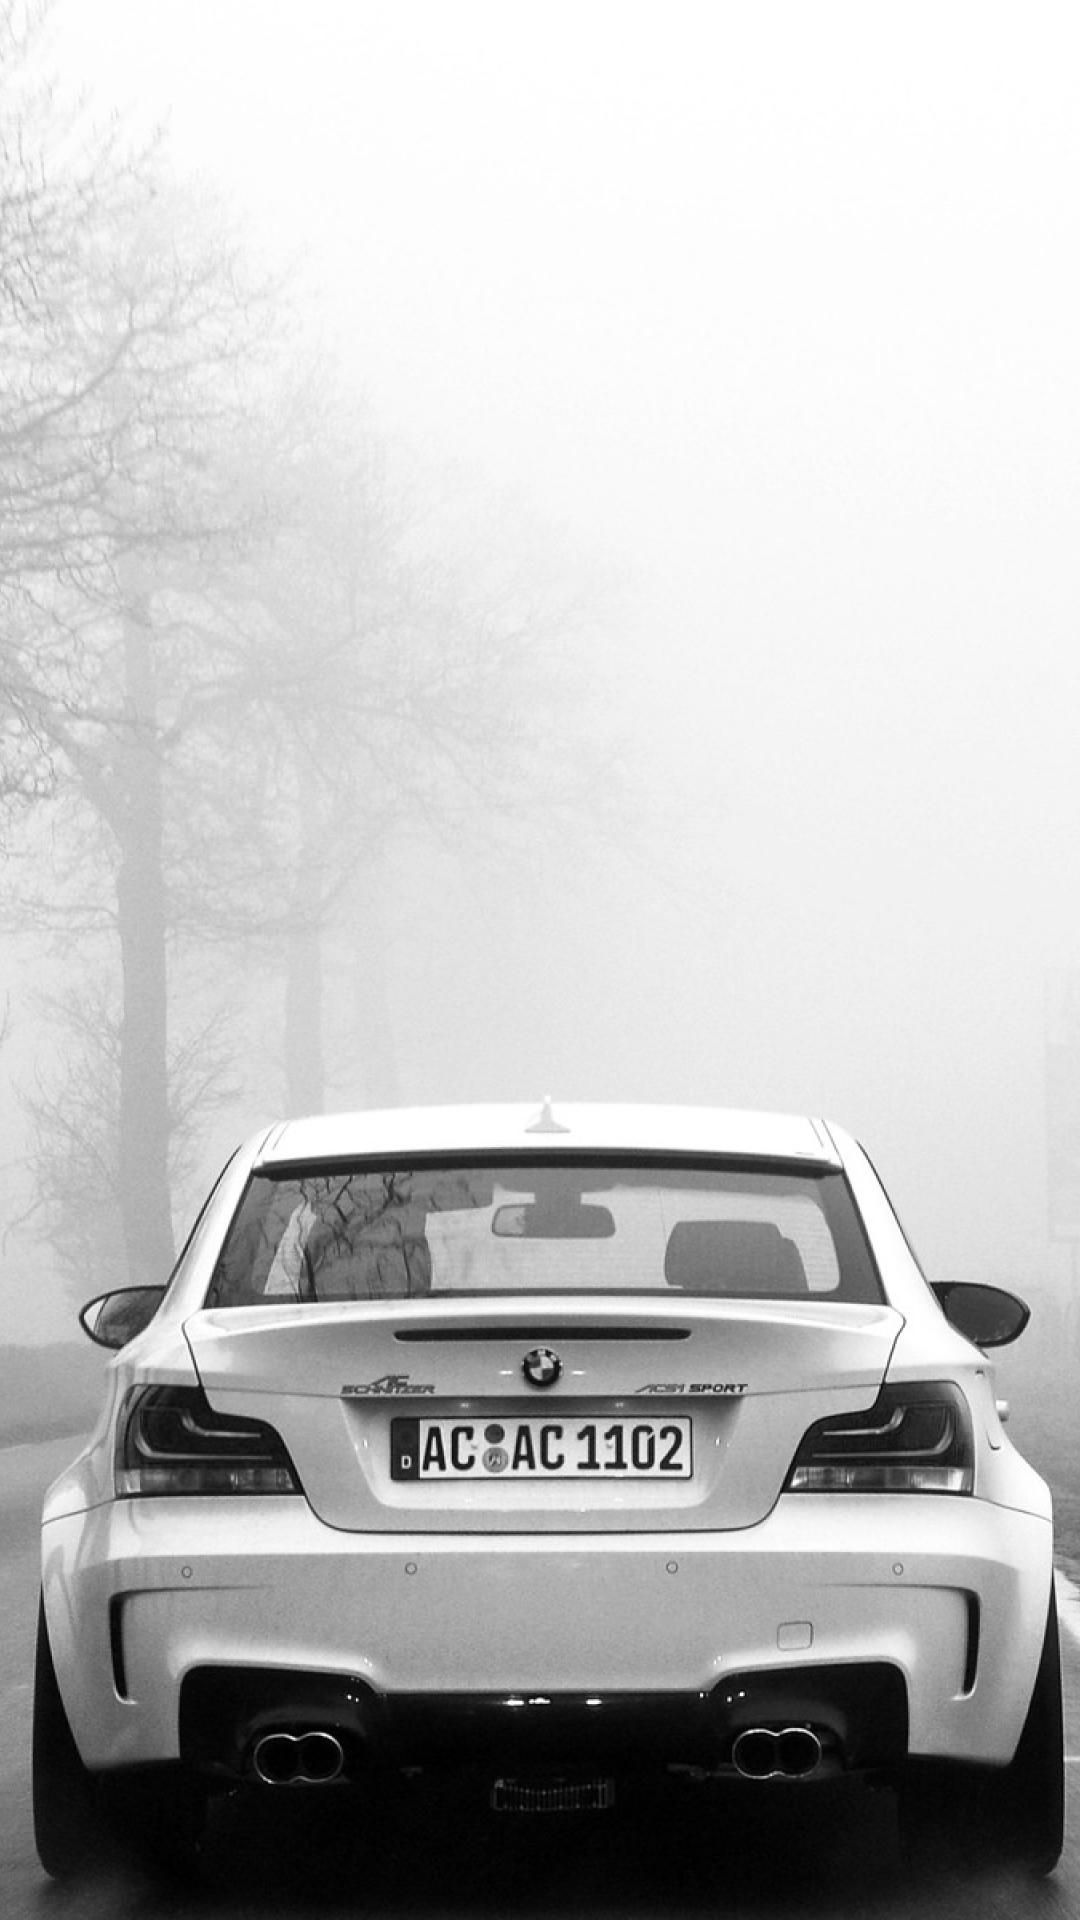 bmw 135i coupe auto & moto bmw iphone 6 plus wallpaper | cars, truck